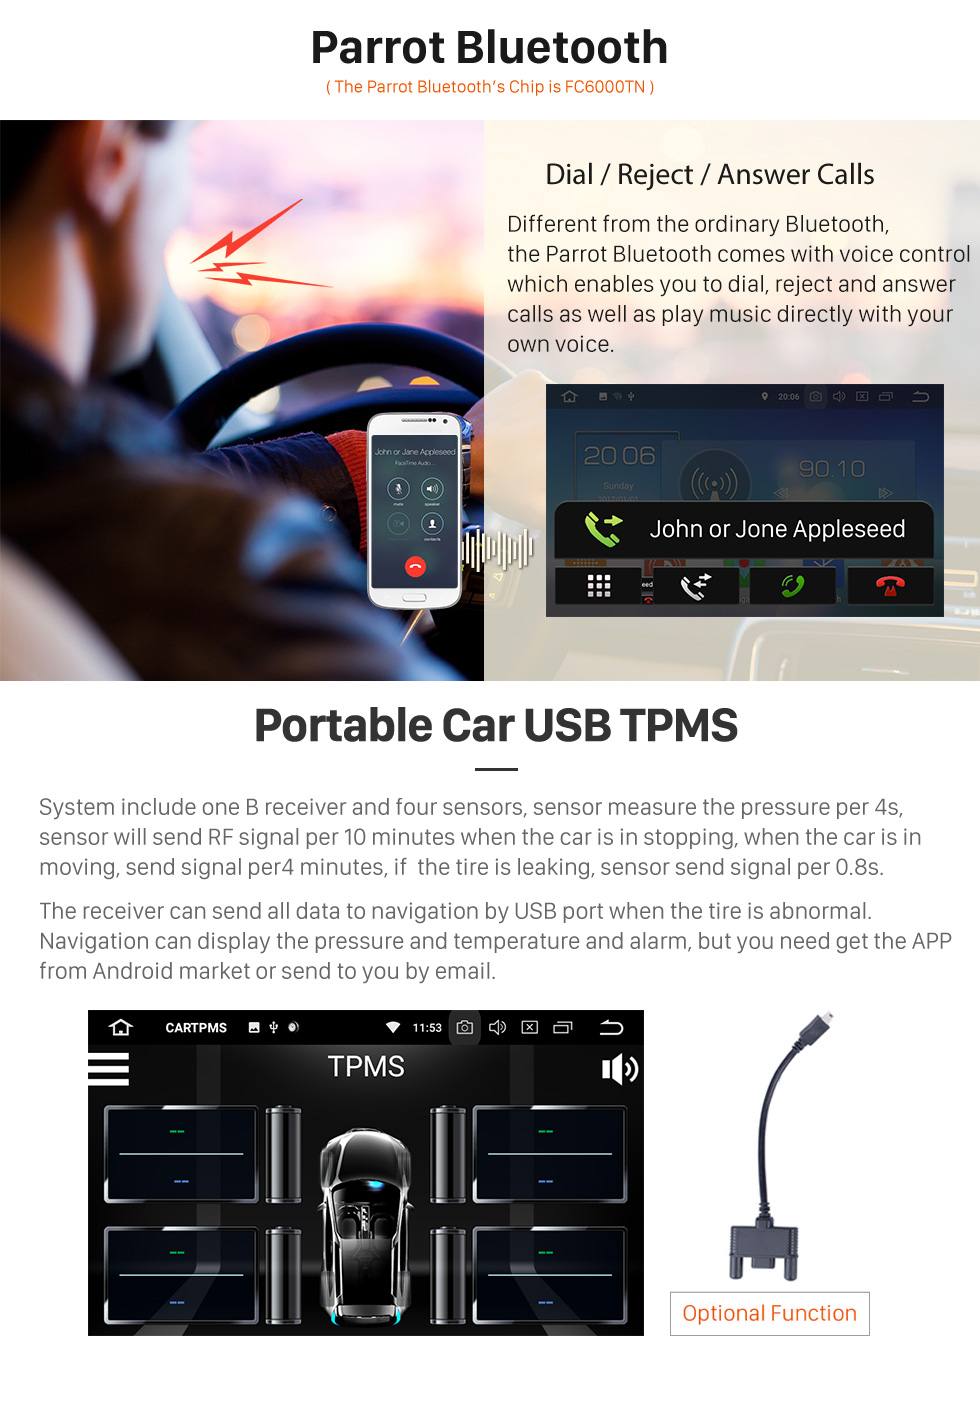 Seicane 10.1 Inch OEM Android 8.0 Radio GPS Navigation system For 2013-2017 Toyota RAV4 with Bluetooth Capacitive Touch Screen TPMS DVR OBD II Rear camera AUX 3G WiFi HD 1080P Video Headrest Monitor Control USB SD